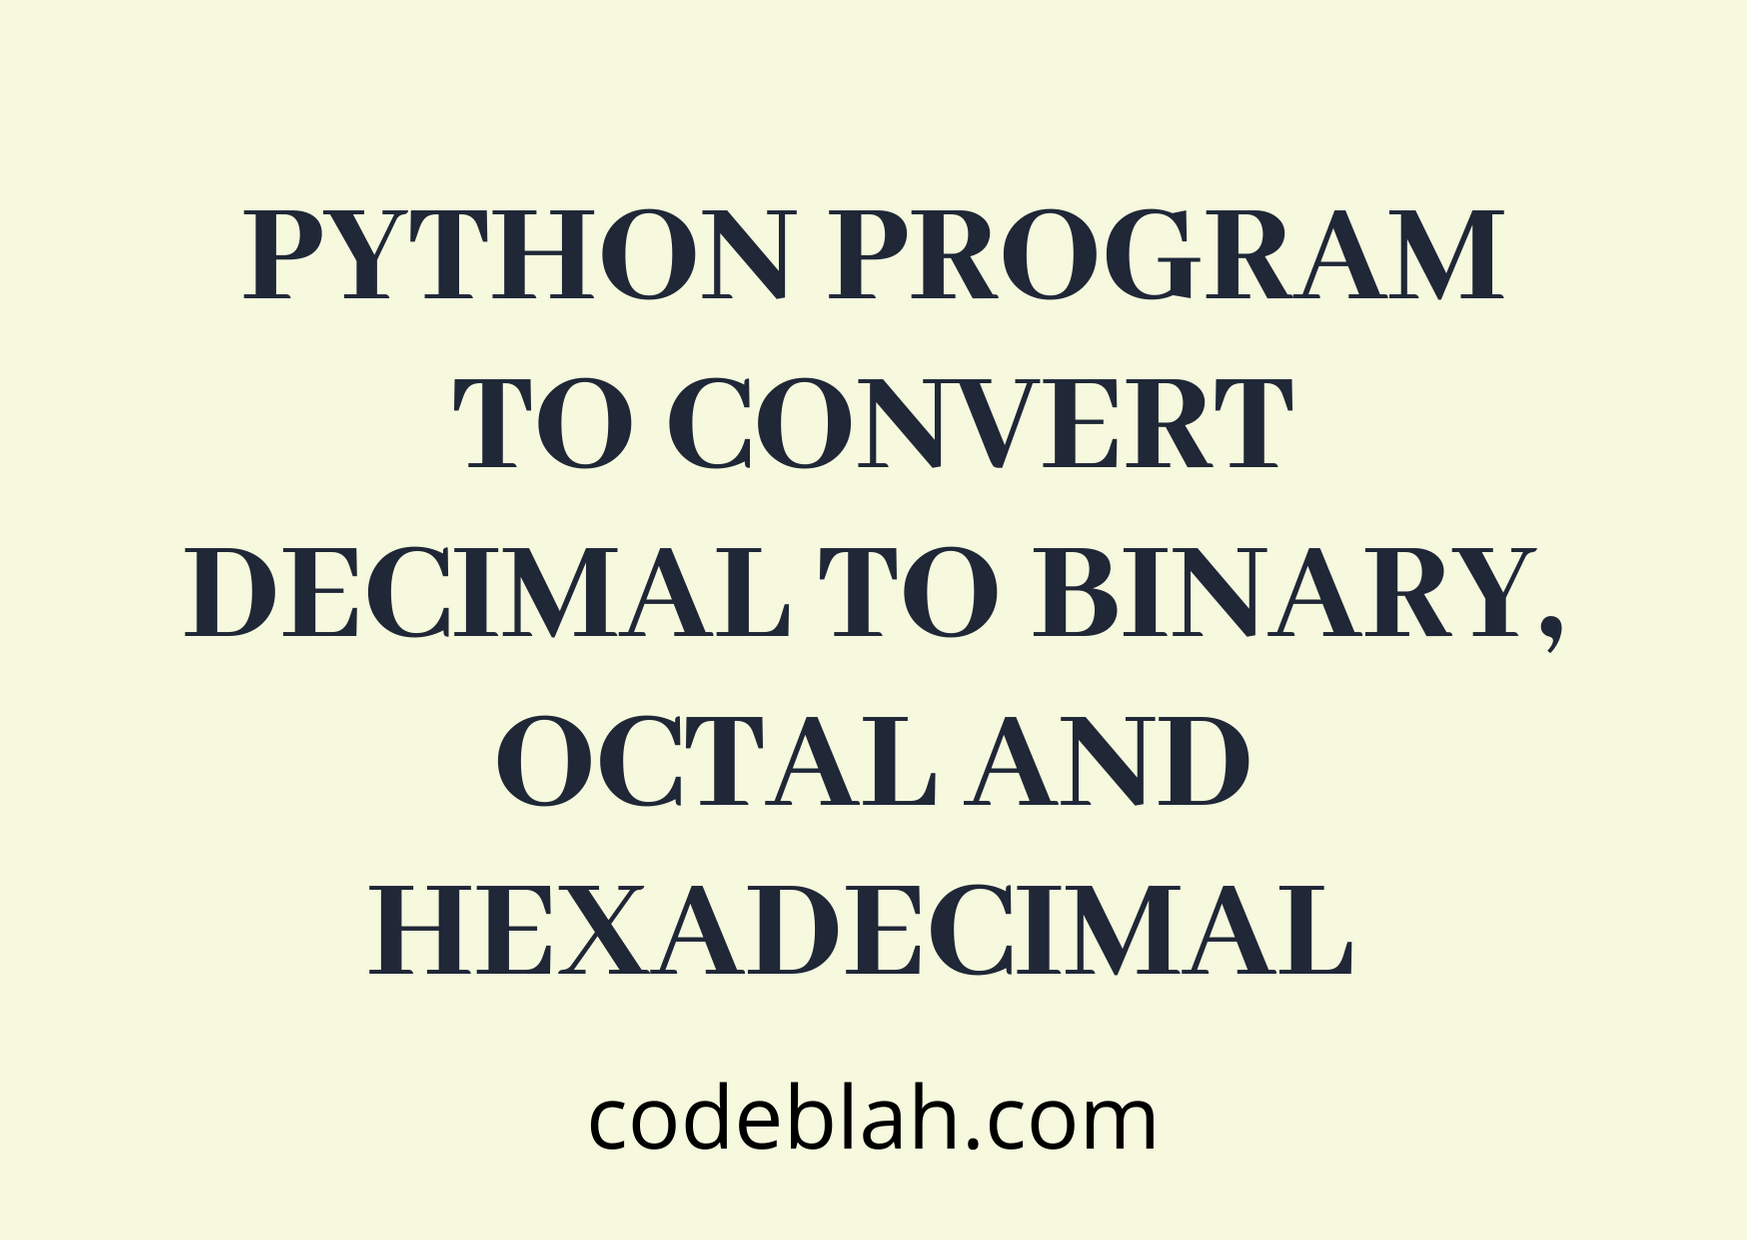 Python Program to Convert Decimal to Binary, Octal and Hexadecimal